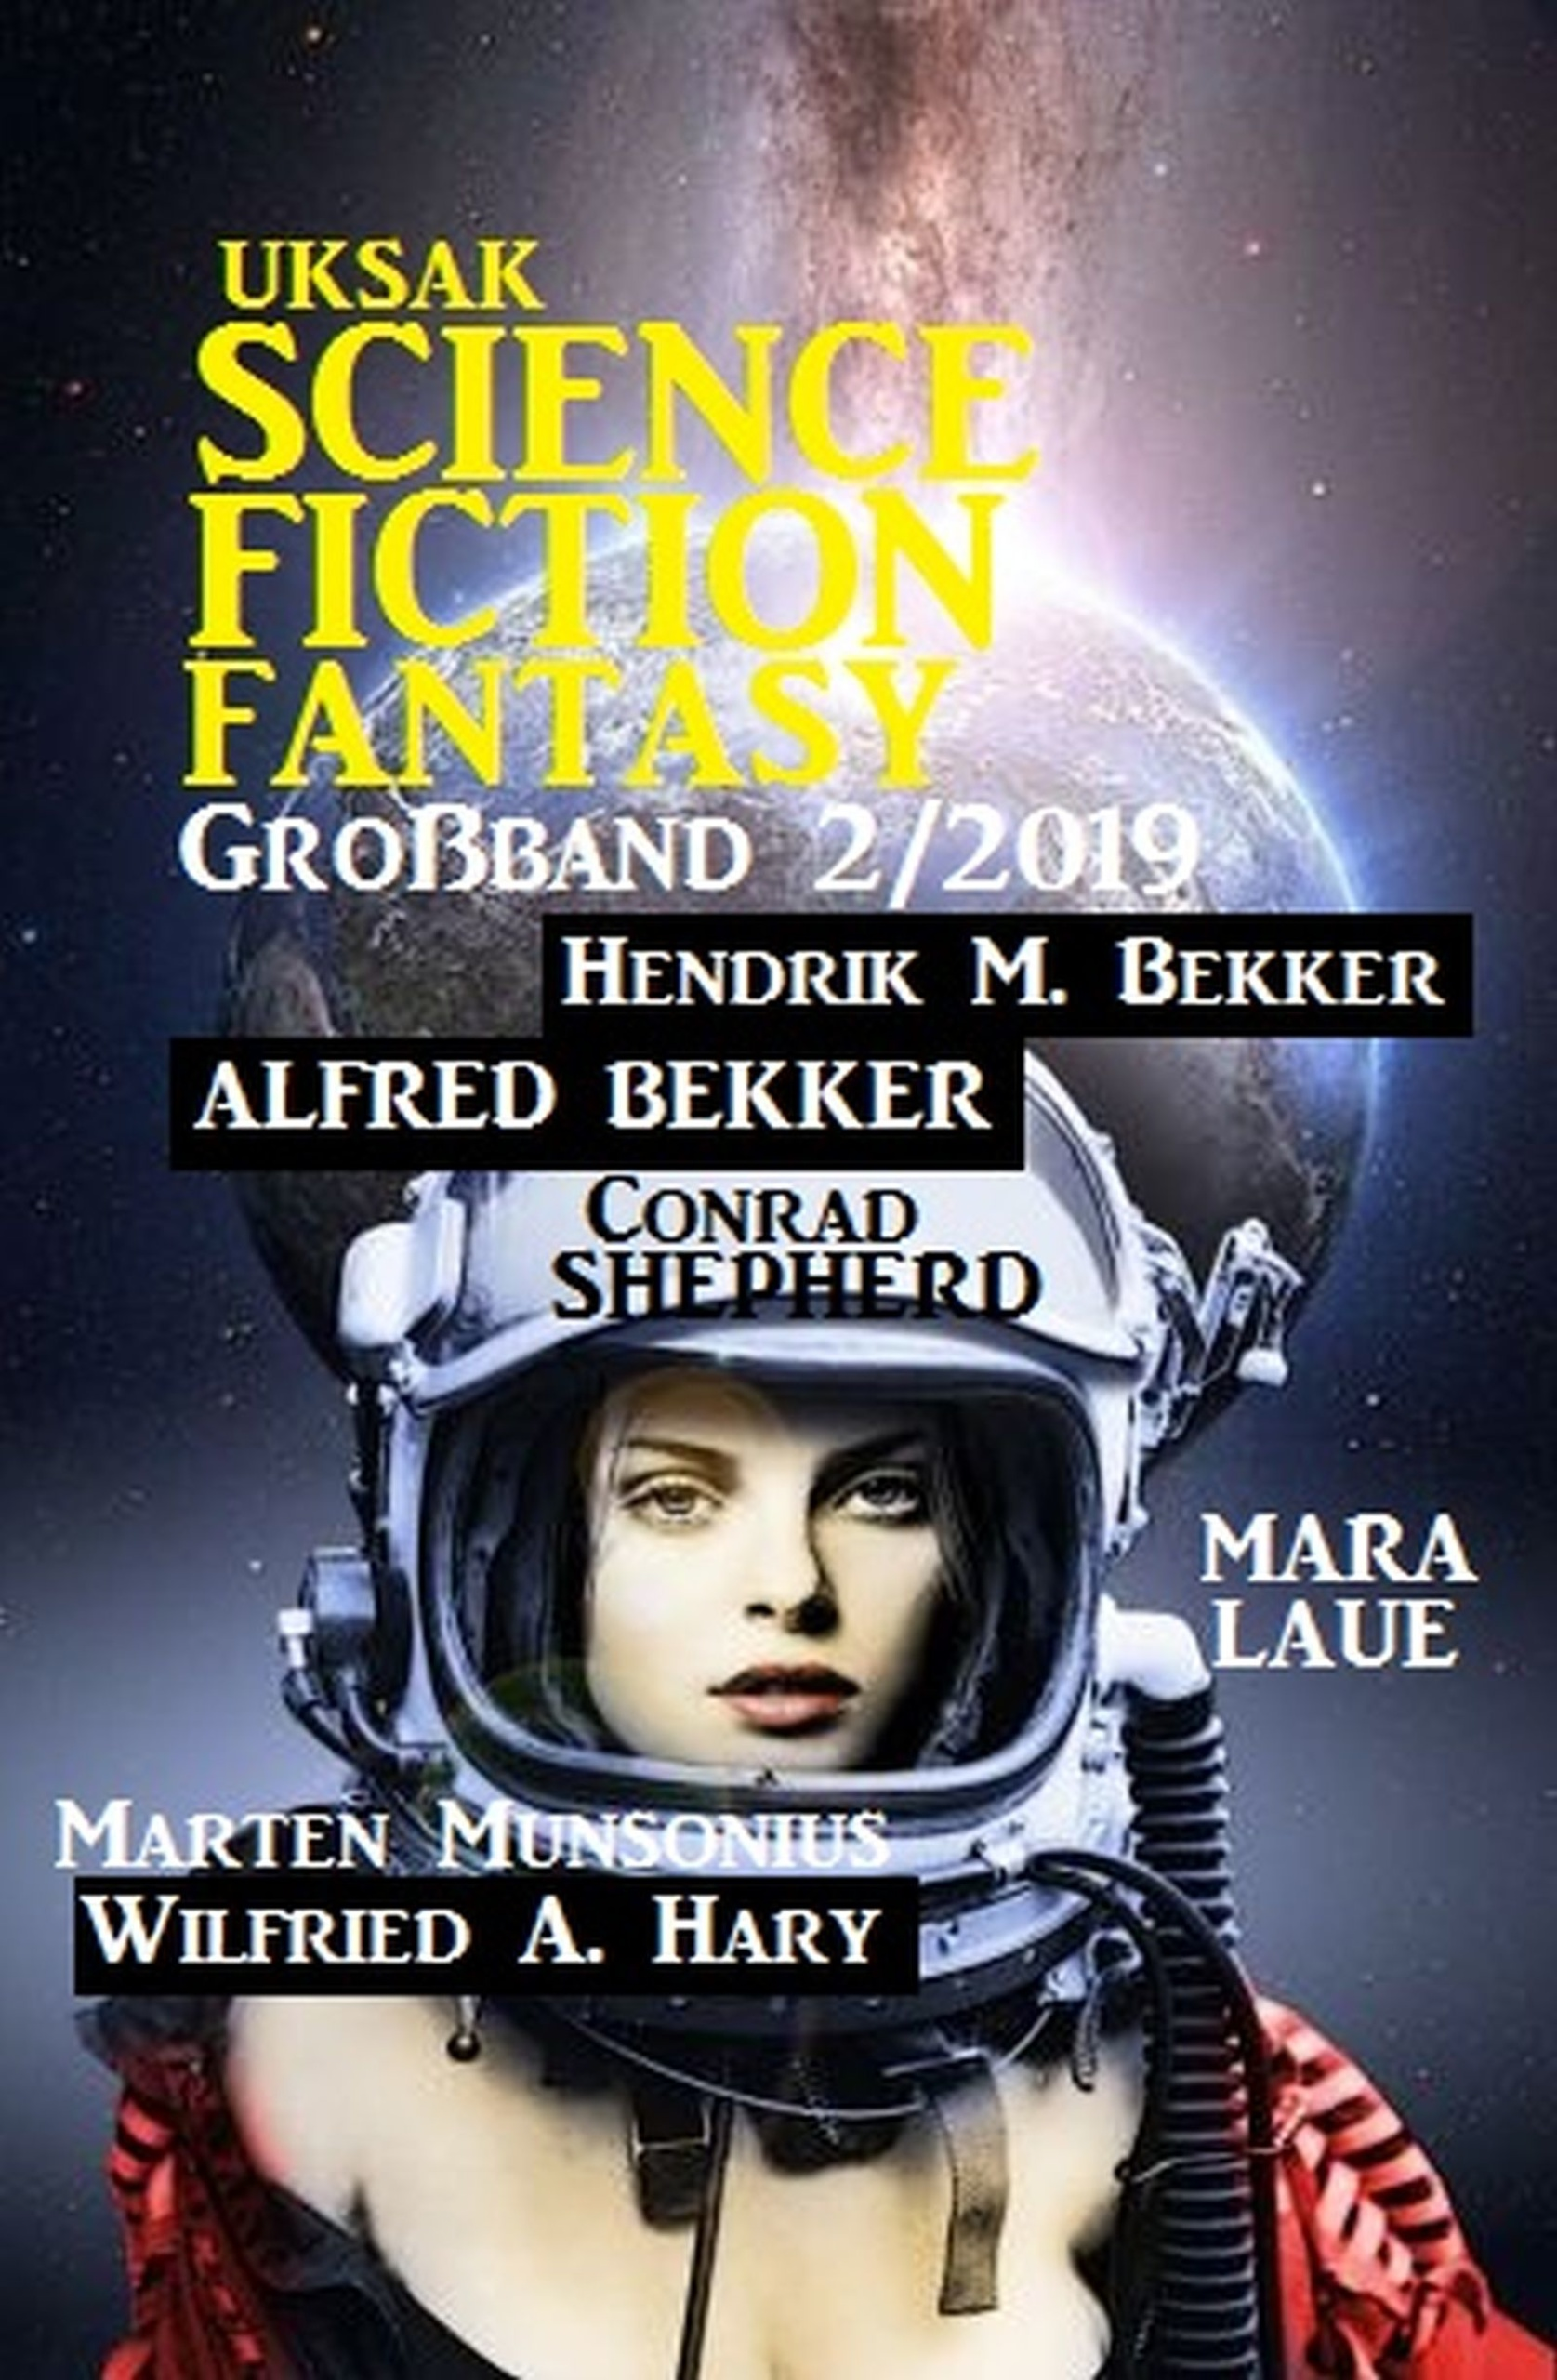 Uksak Science Fiction Fantasy Großband 2/2019